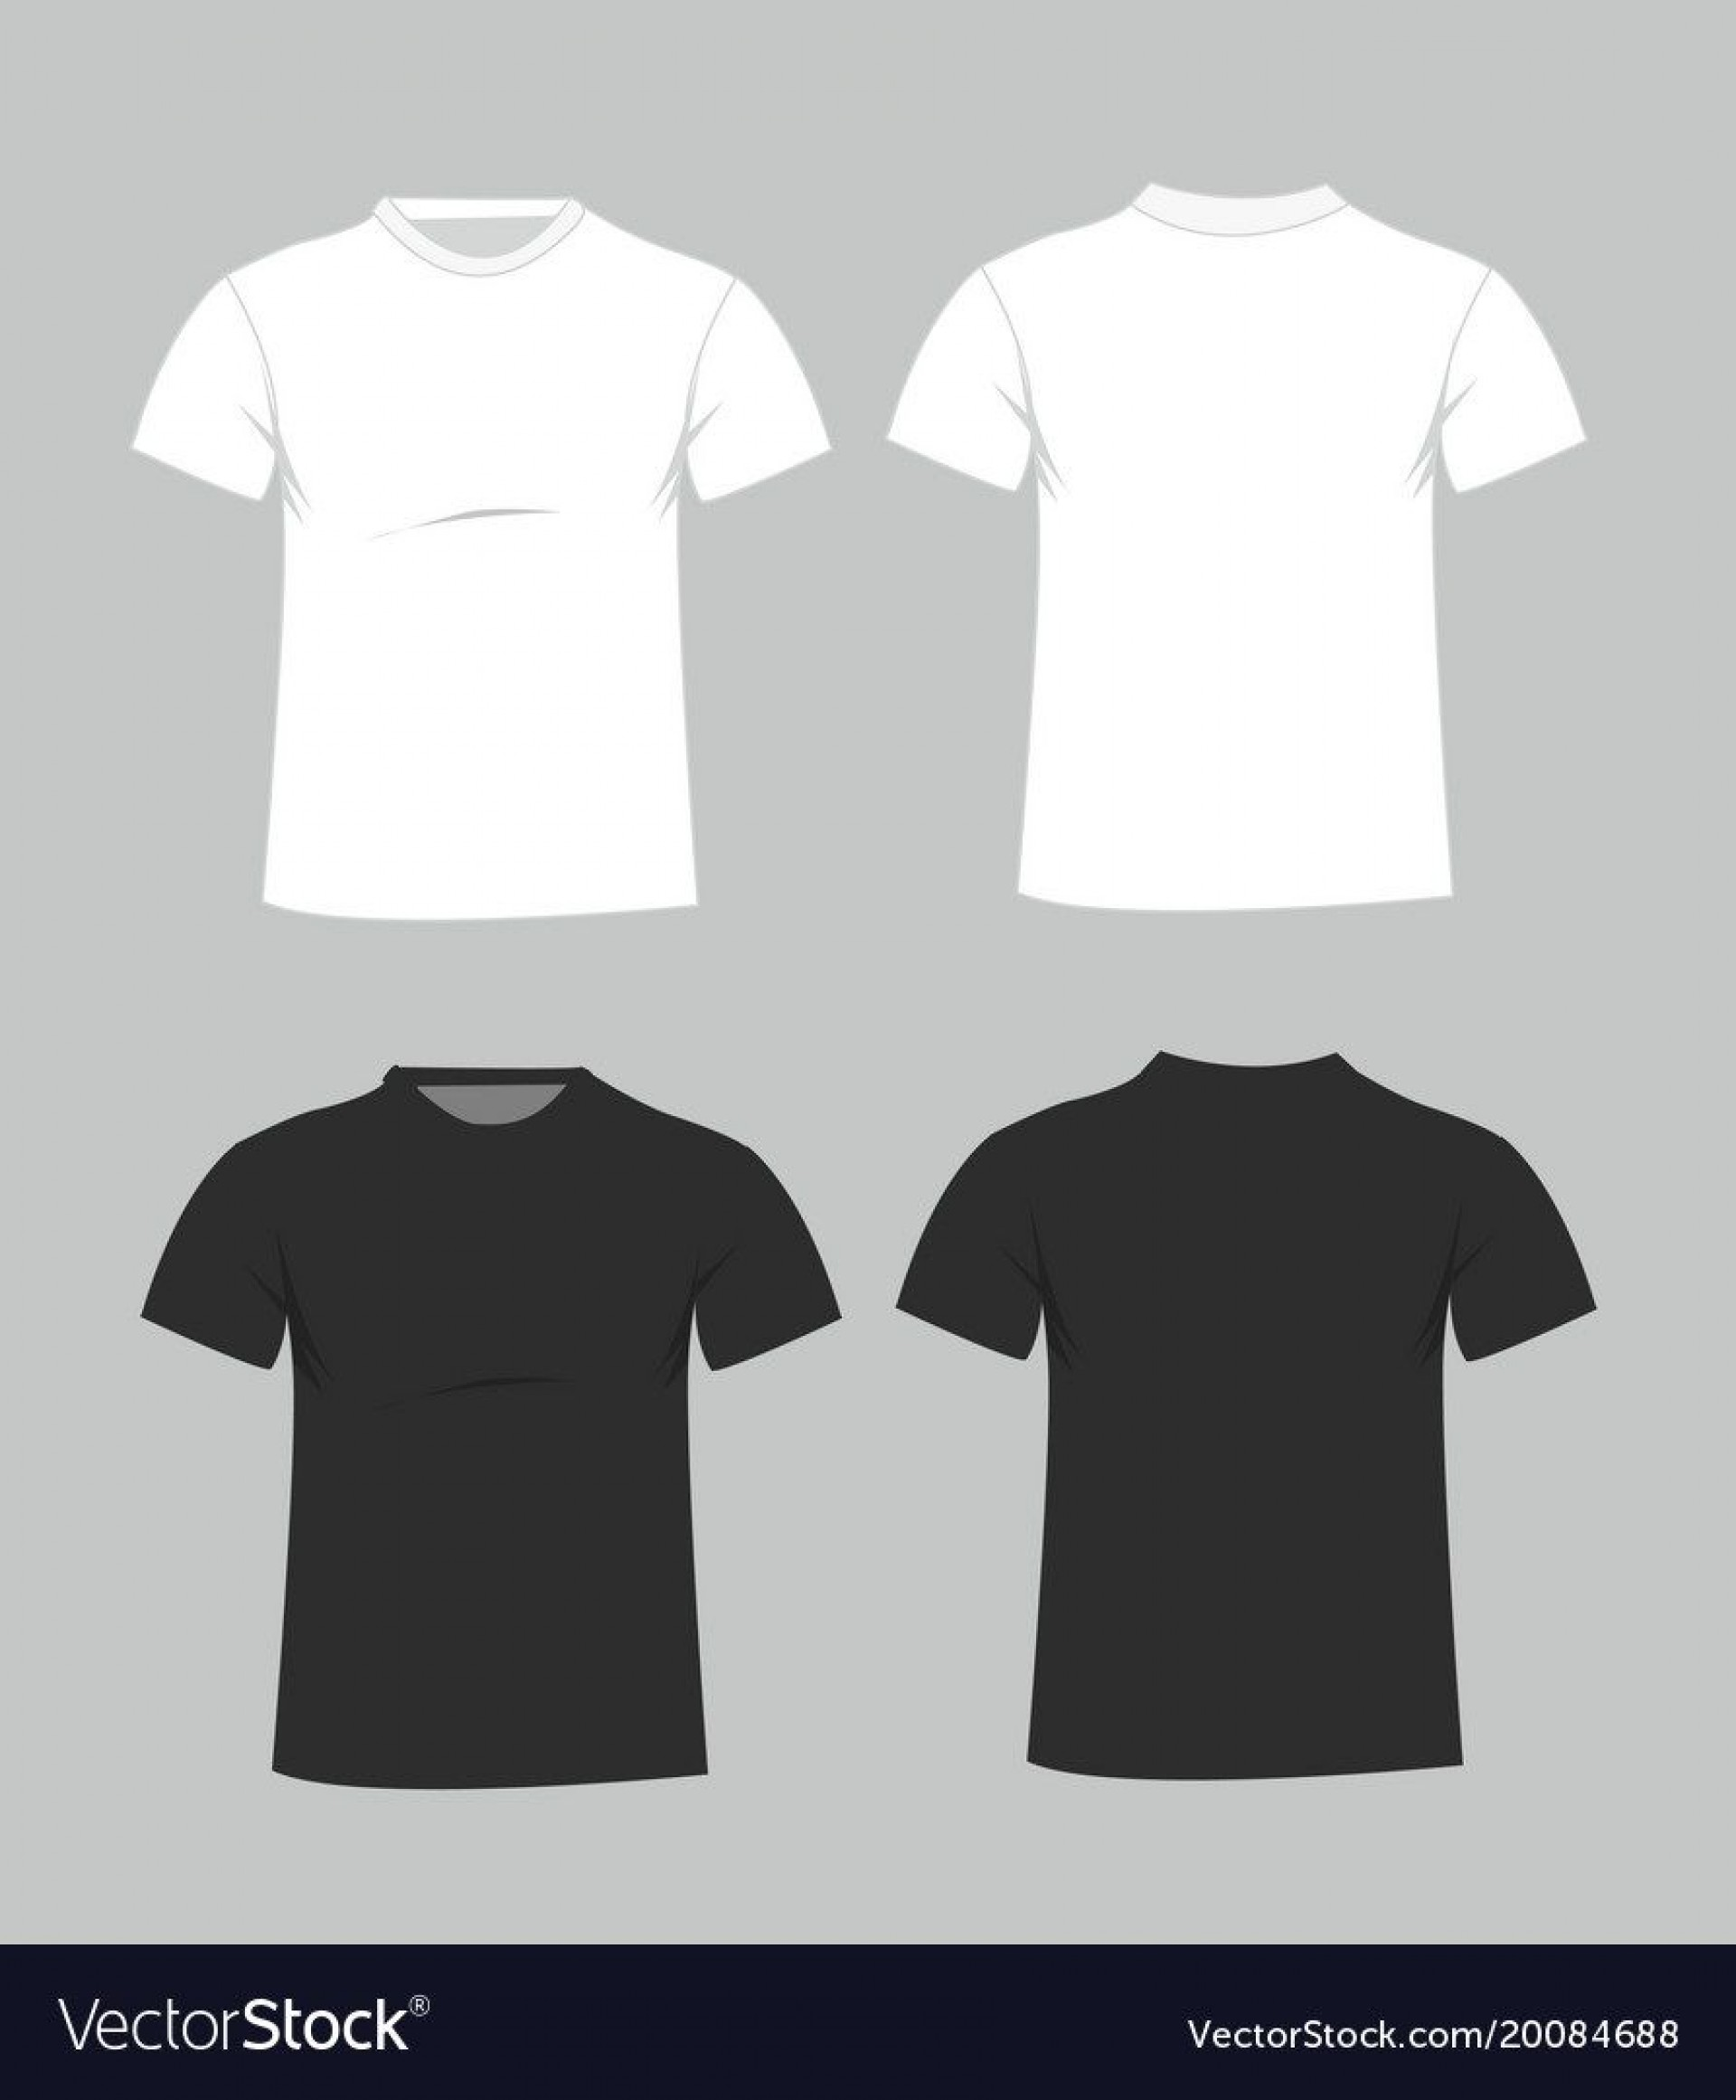 006 Magnificent Plain T Shirt Template Example  Blank Front And Back1920